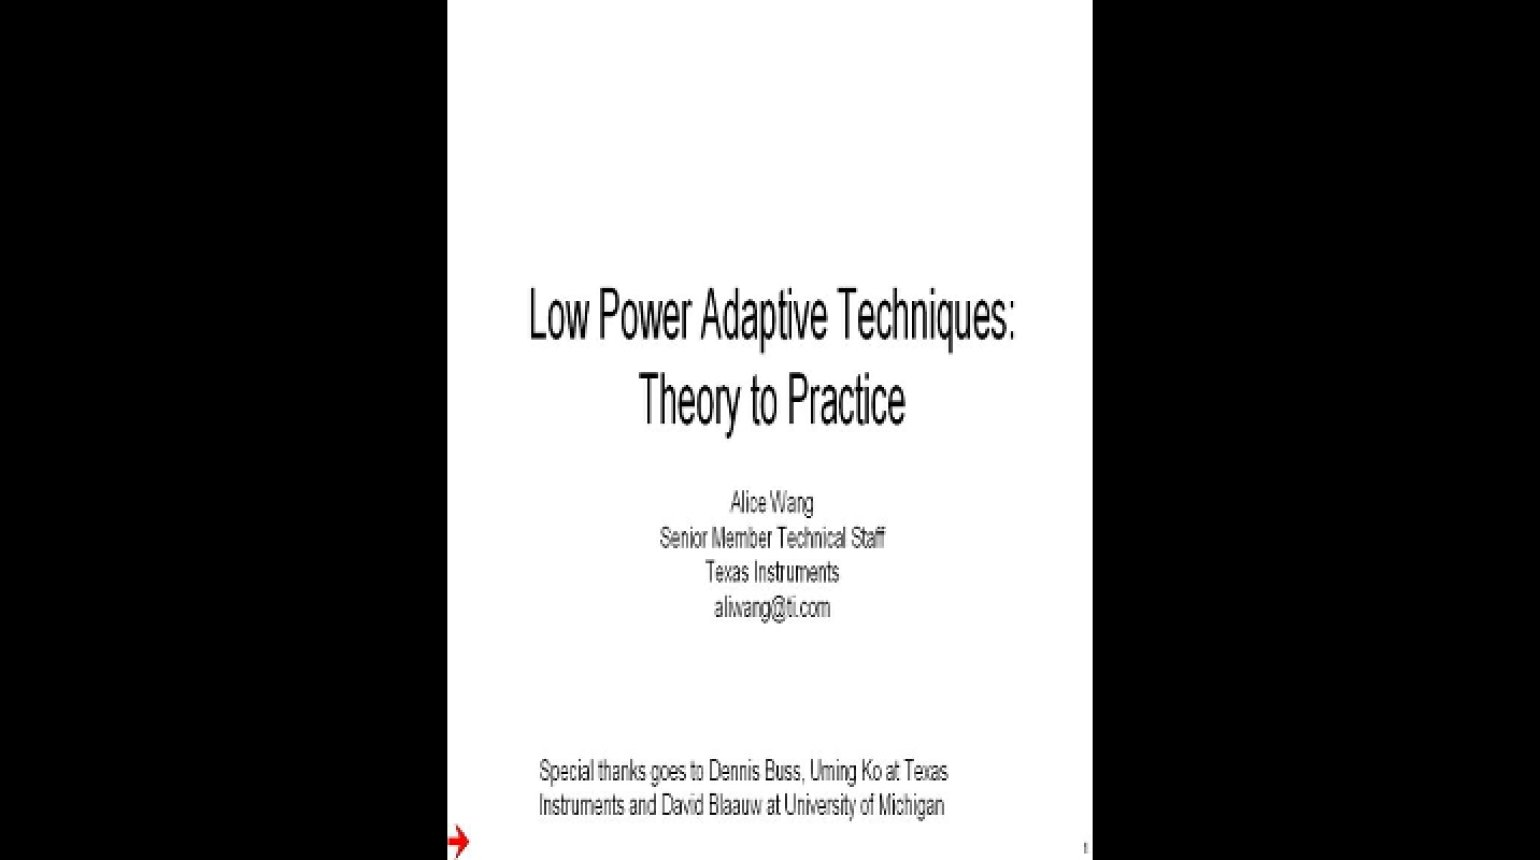 Adaptive Power Managemnt Techniques Video